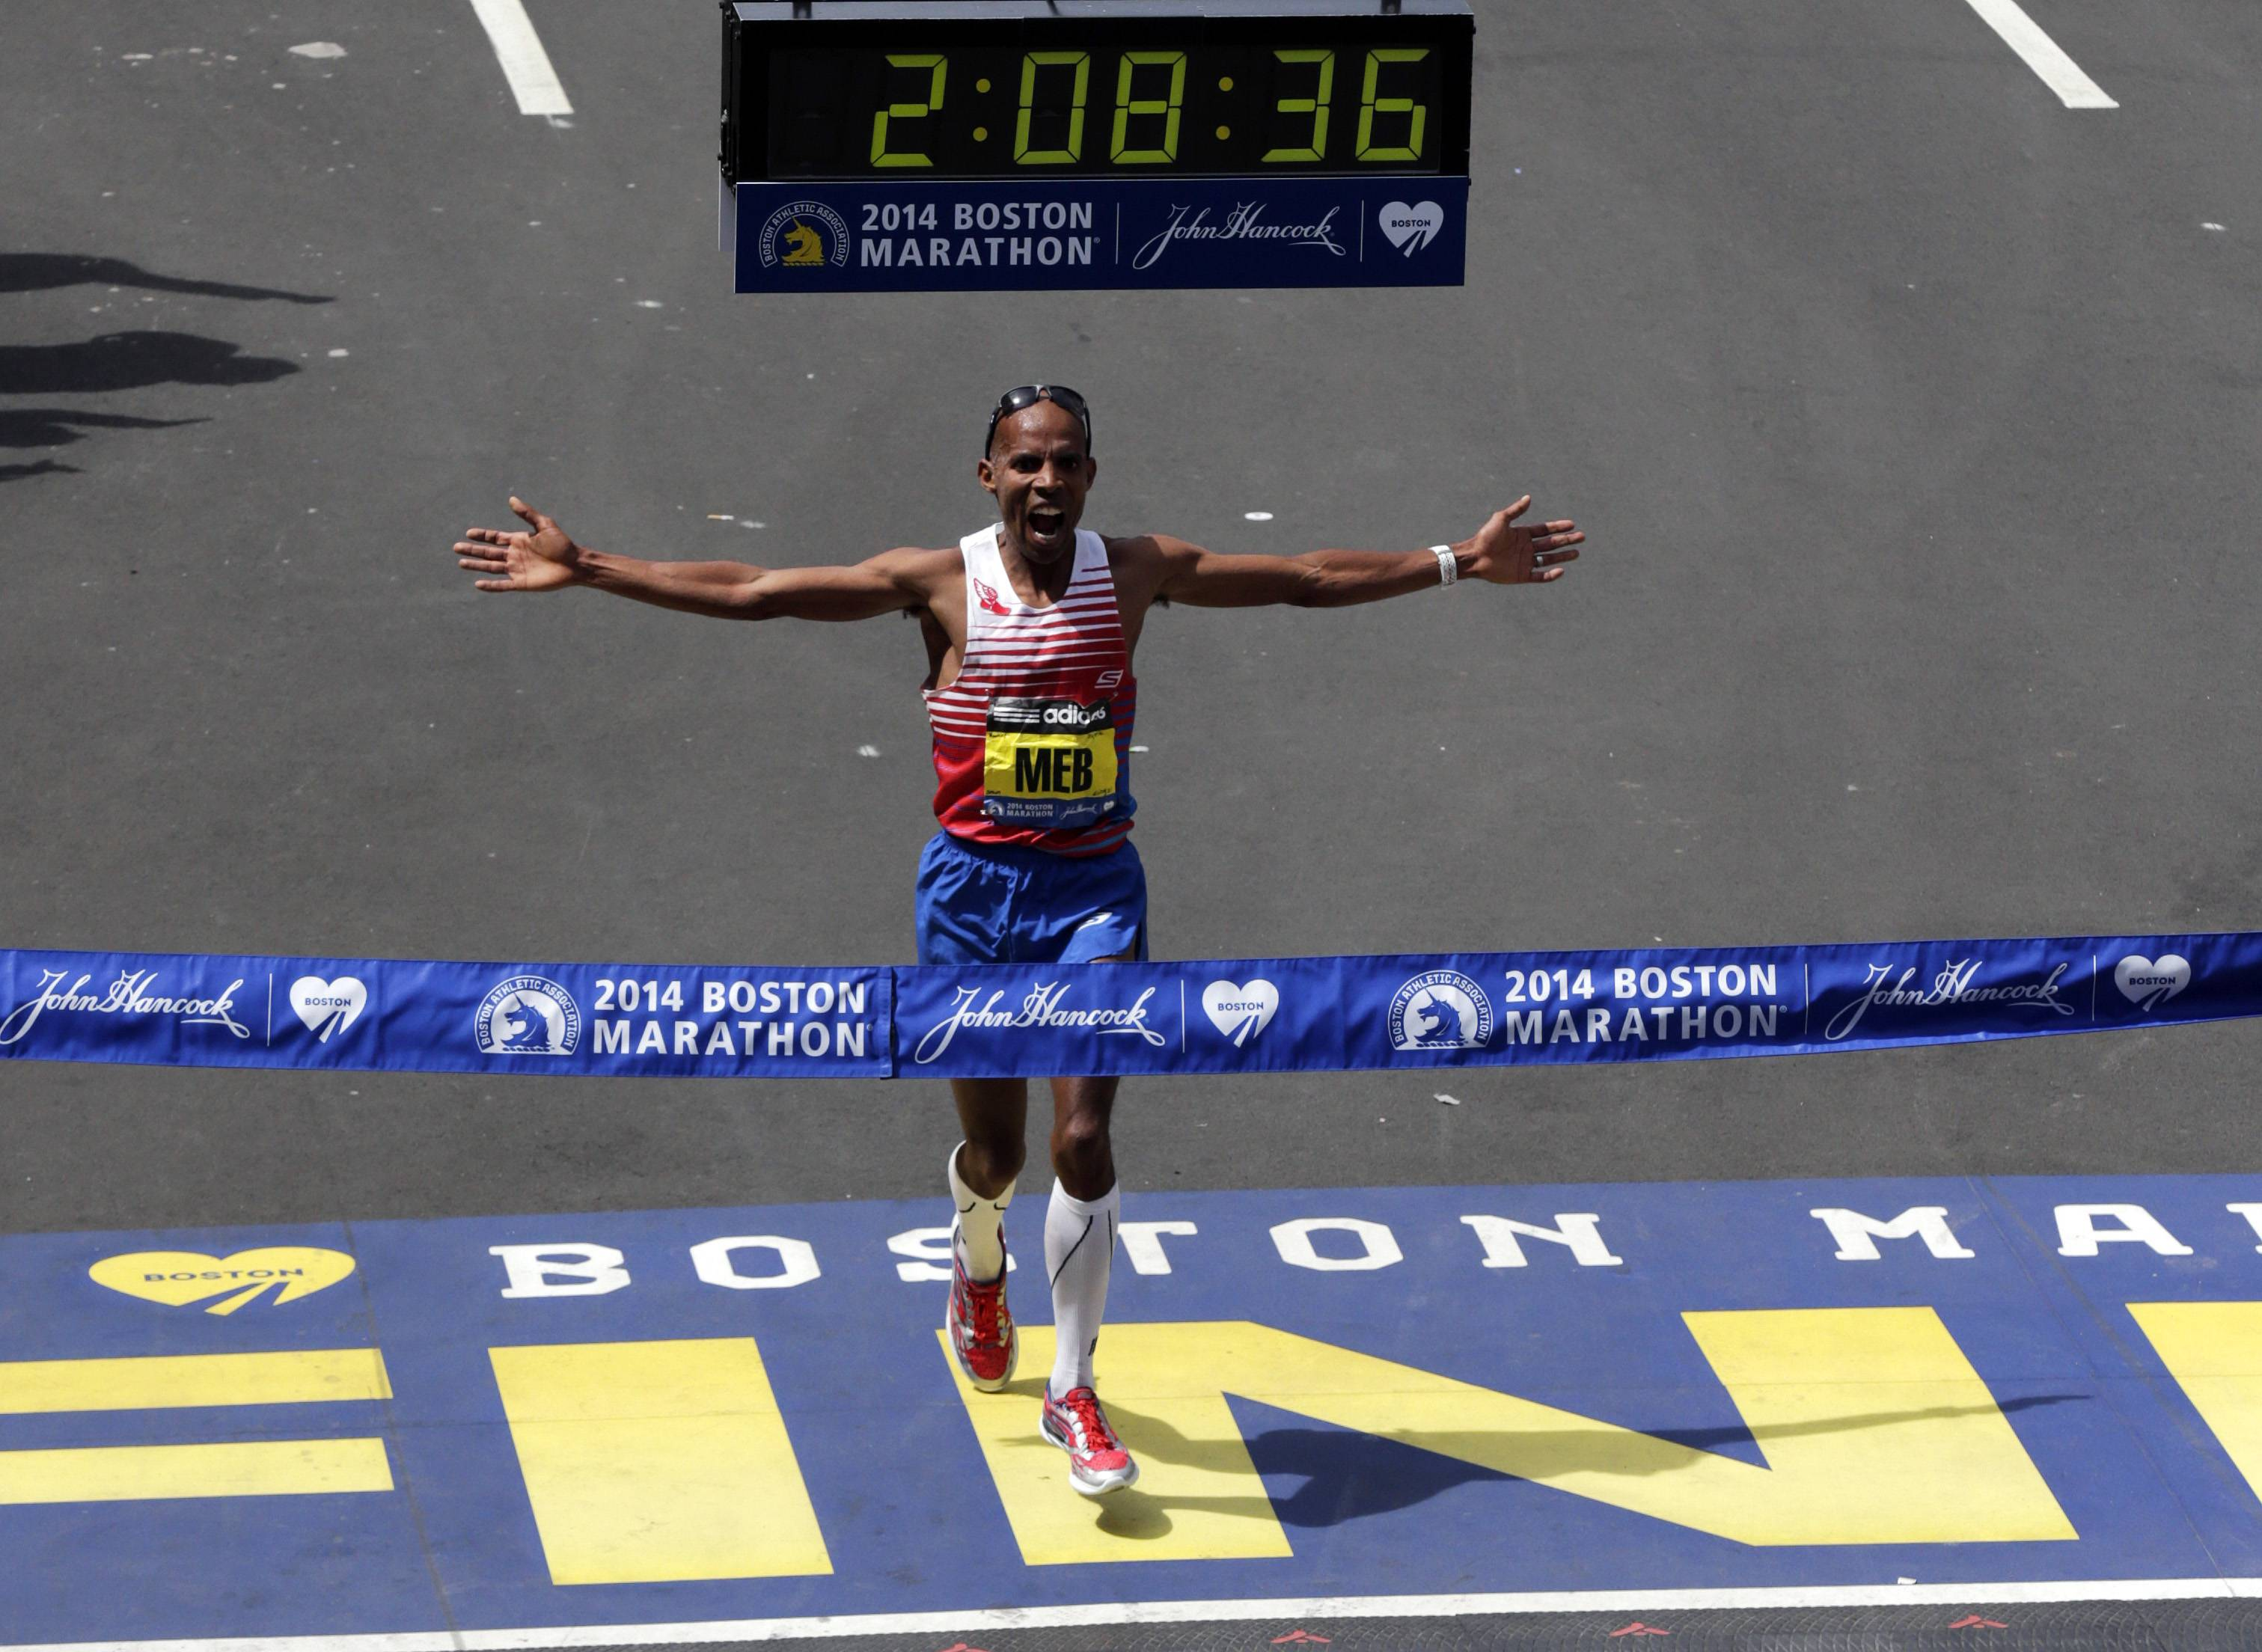 Meb Keflezighi, of San Diego, Calif., celebrates as he crosses the finish line to win the 118th Boston Marathon